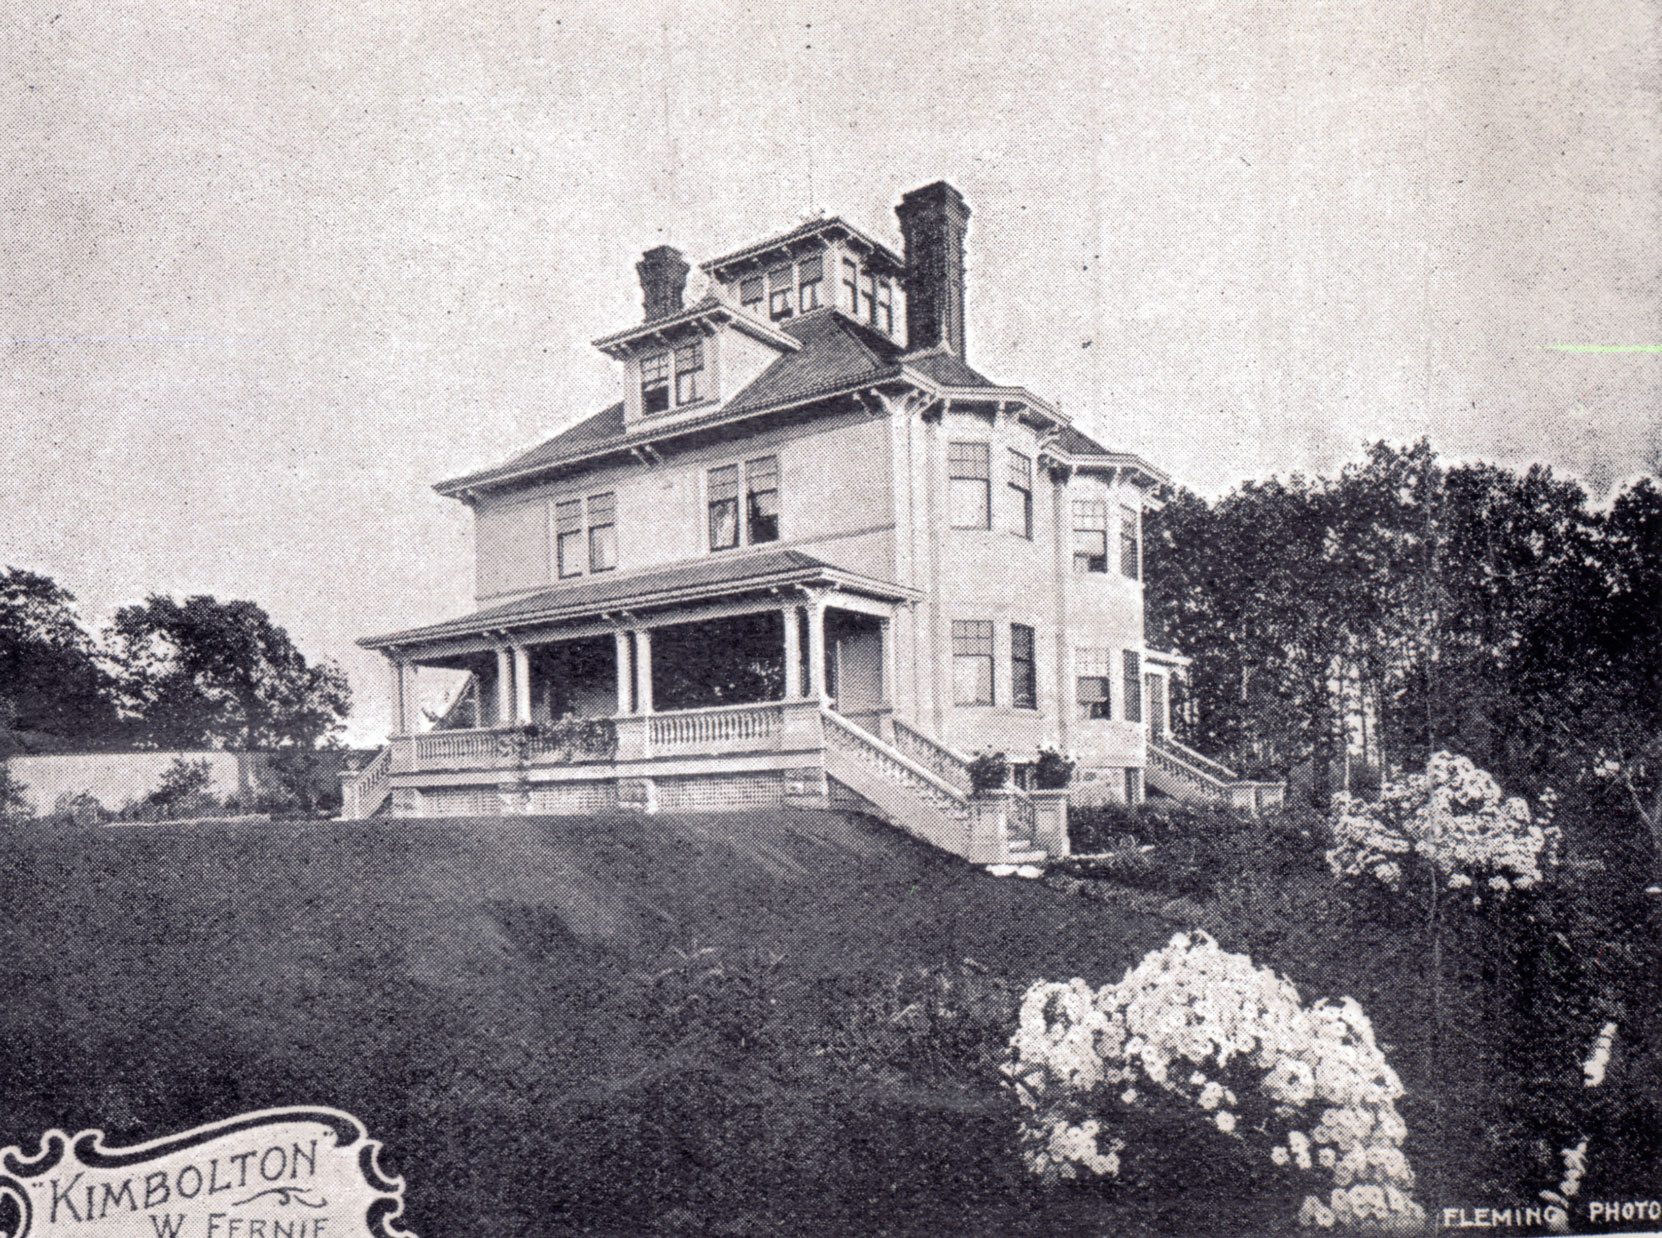 William Fernie's home, Kimbolton, circa 1912. Kimbolton, now demolished, was located near the intersection of oak Bay Avenue and Monterey Avenue (Author's collection)